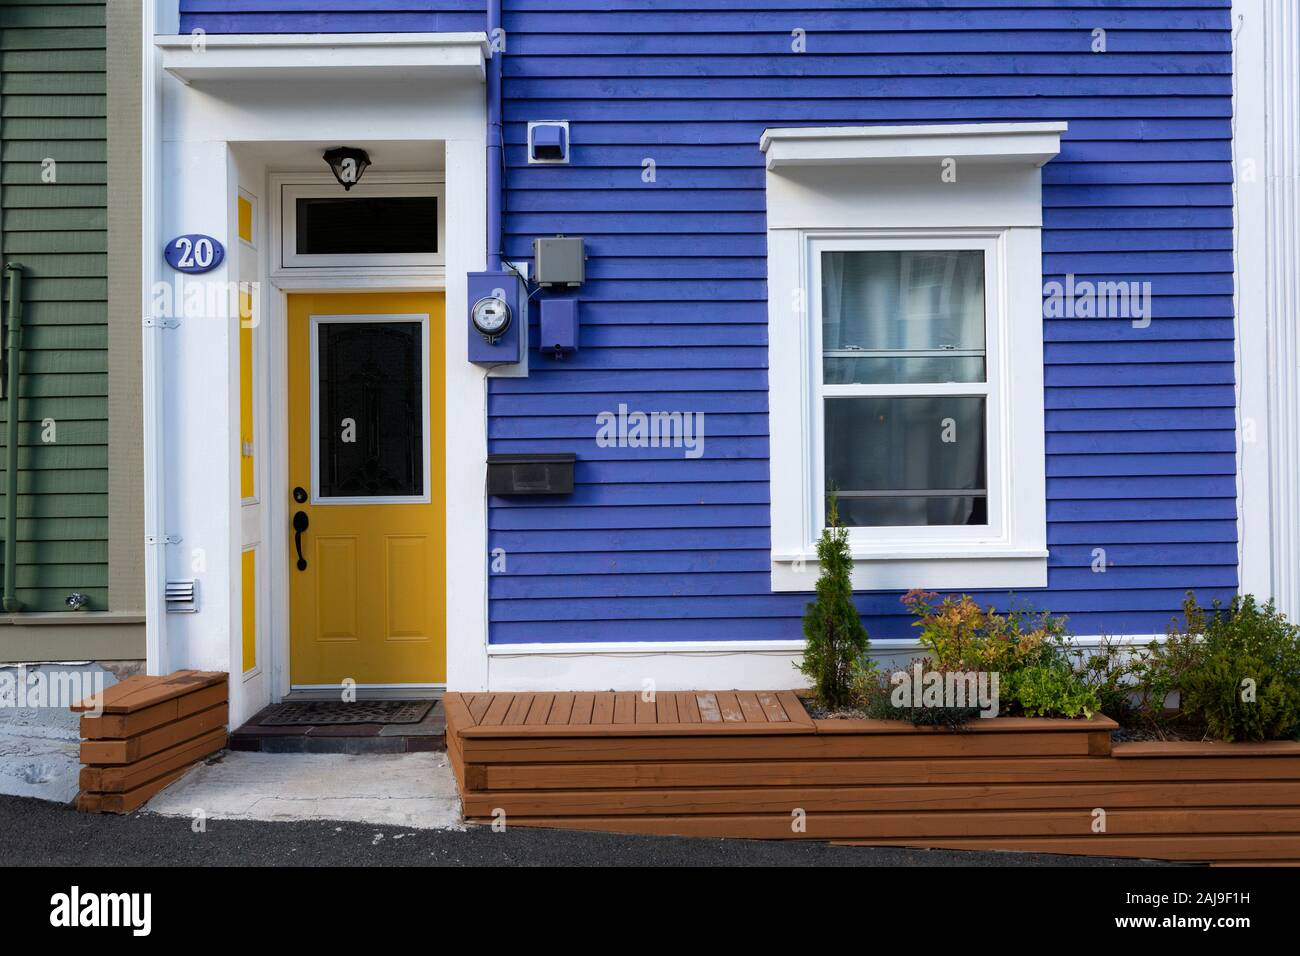 Facade Of A House In St John S Newfoundland And Labrador Canada The House Has A Yellow Door Stock Photo Alamy